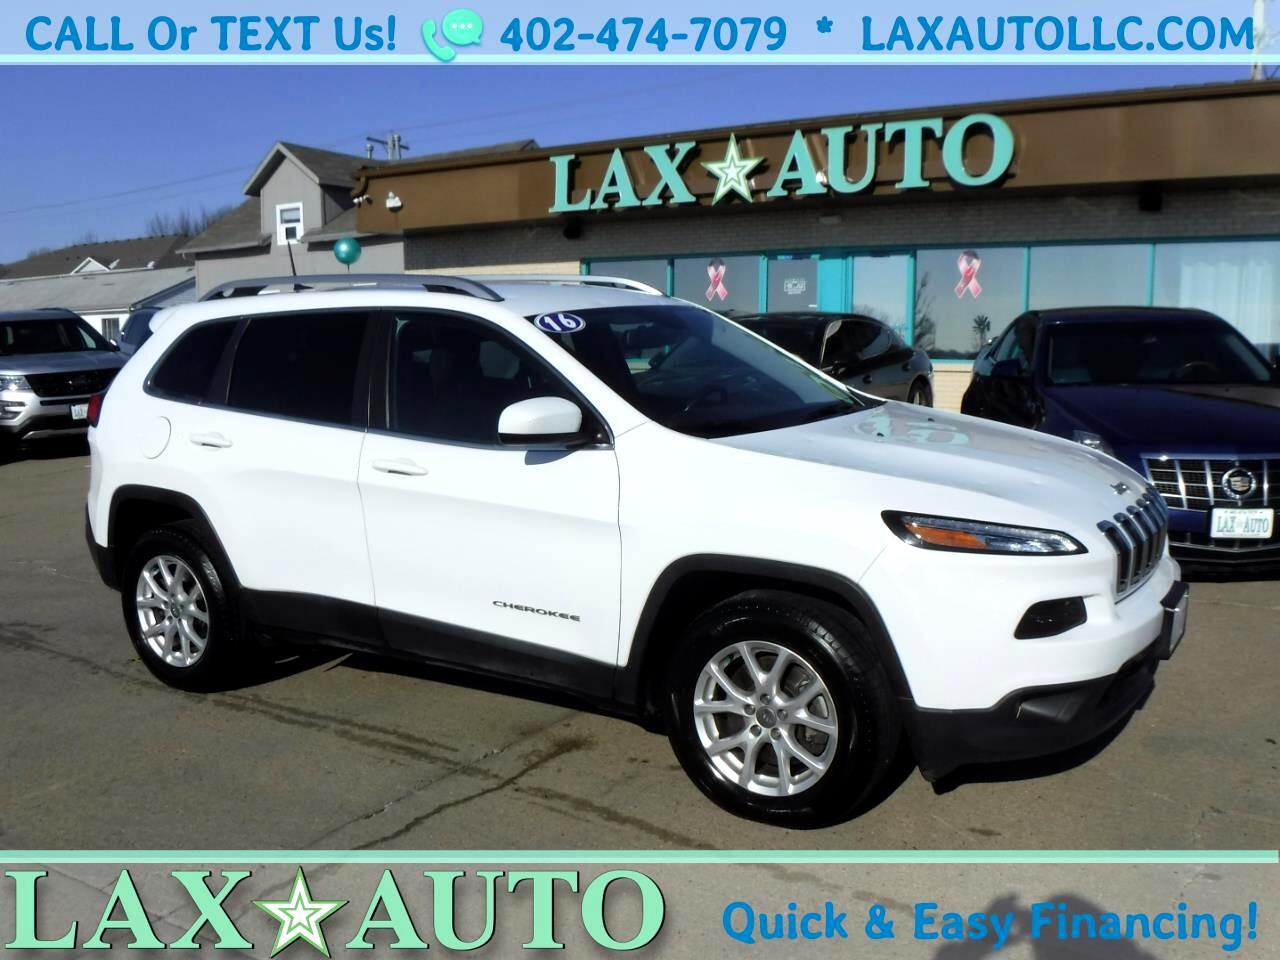 2016 Jeep Cherokee Latitude 4WD V6 * Only 25k Miles! * Back-up Cam! *